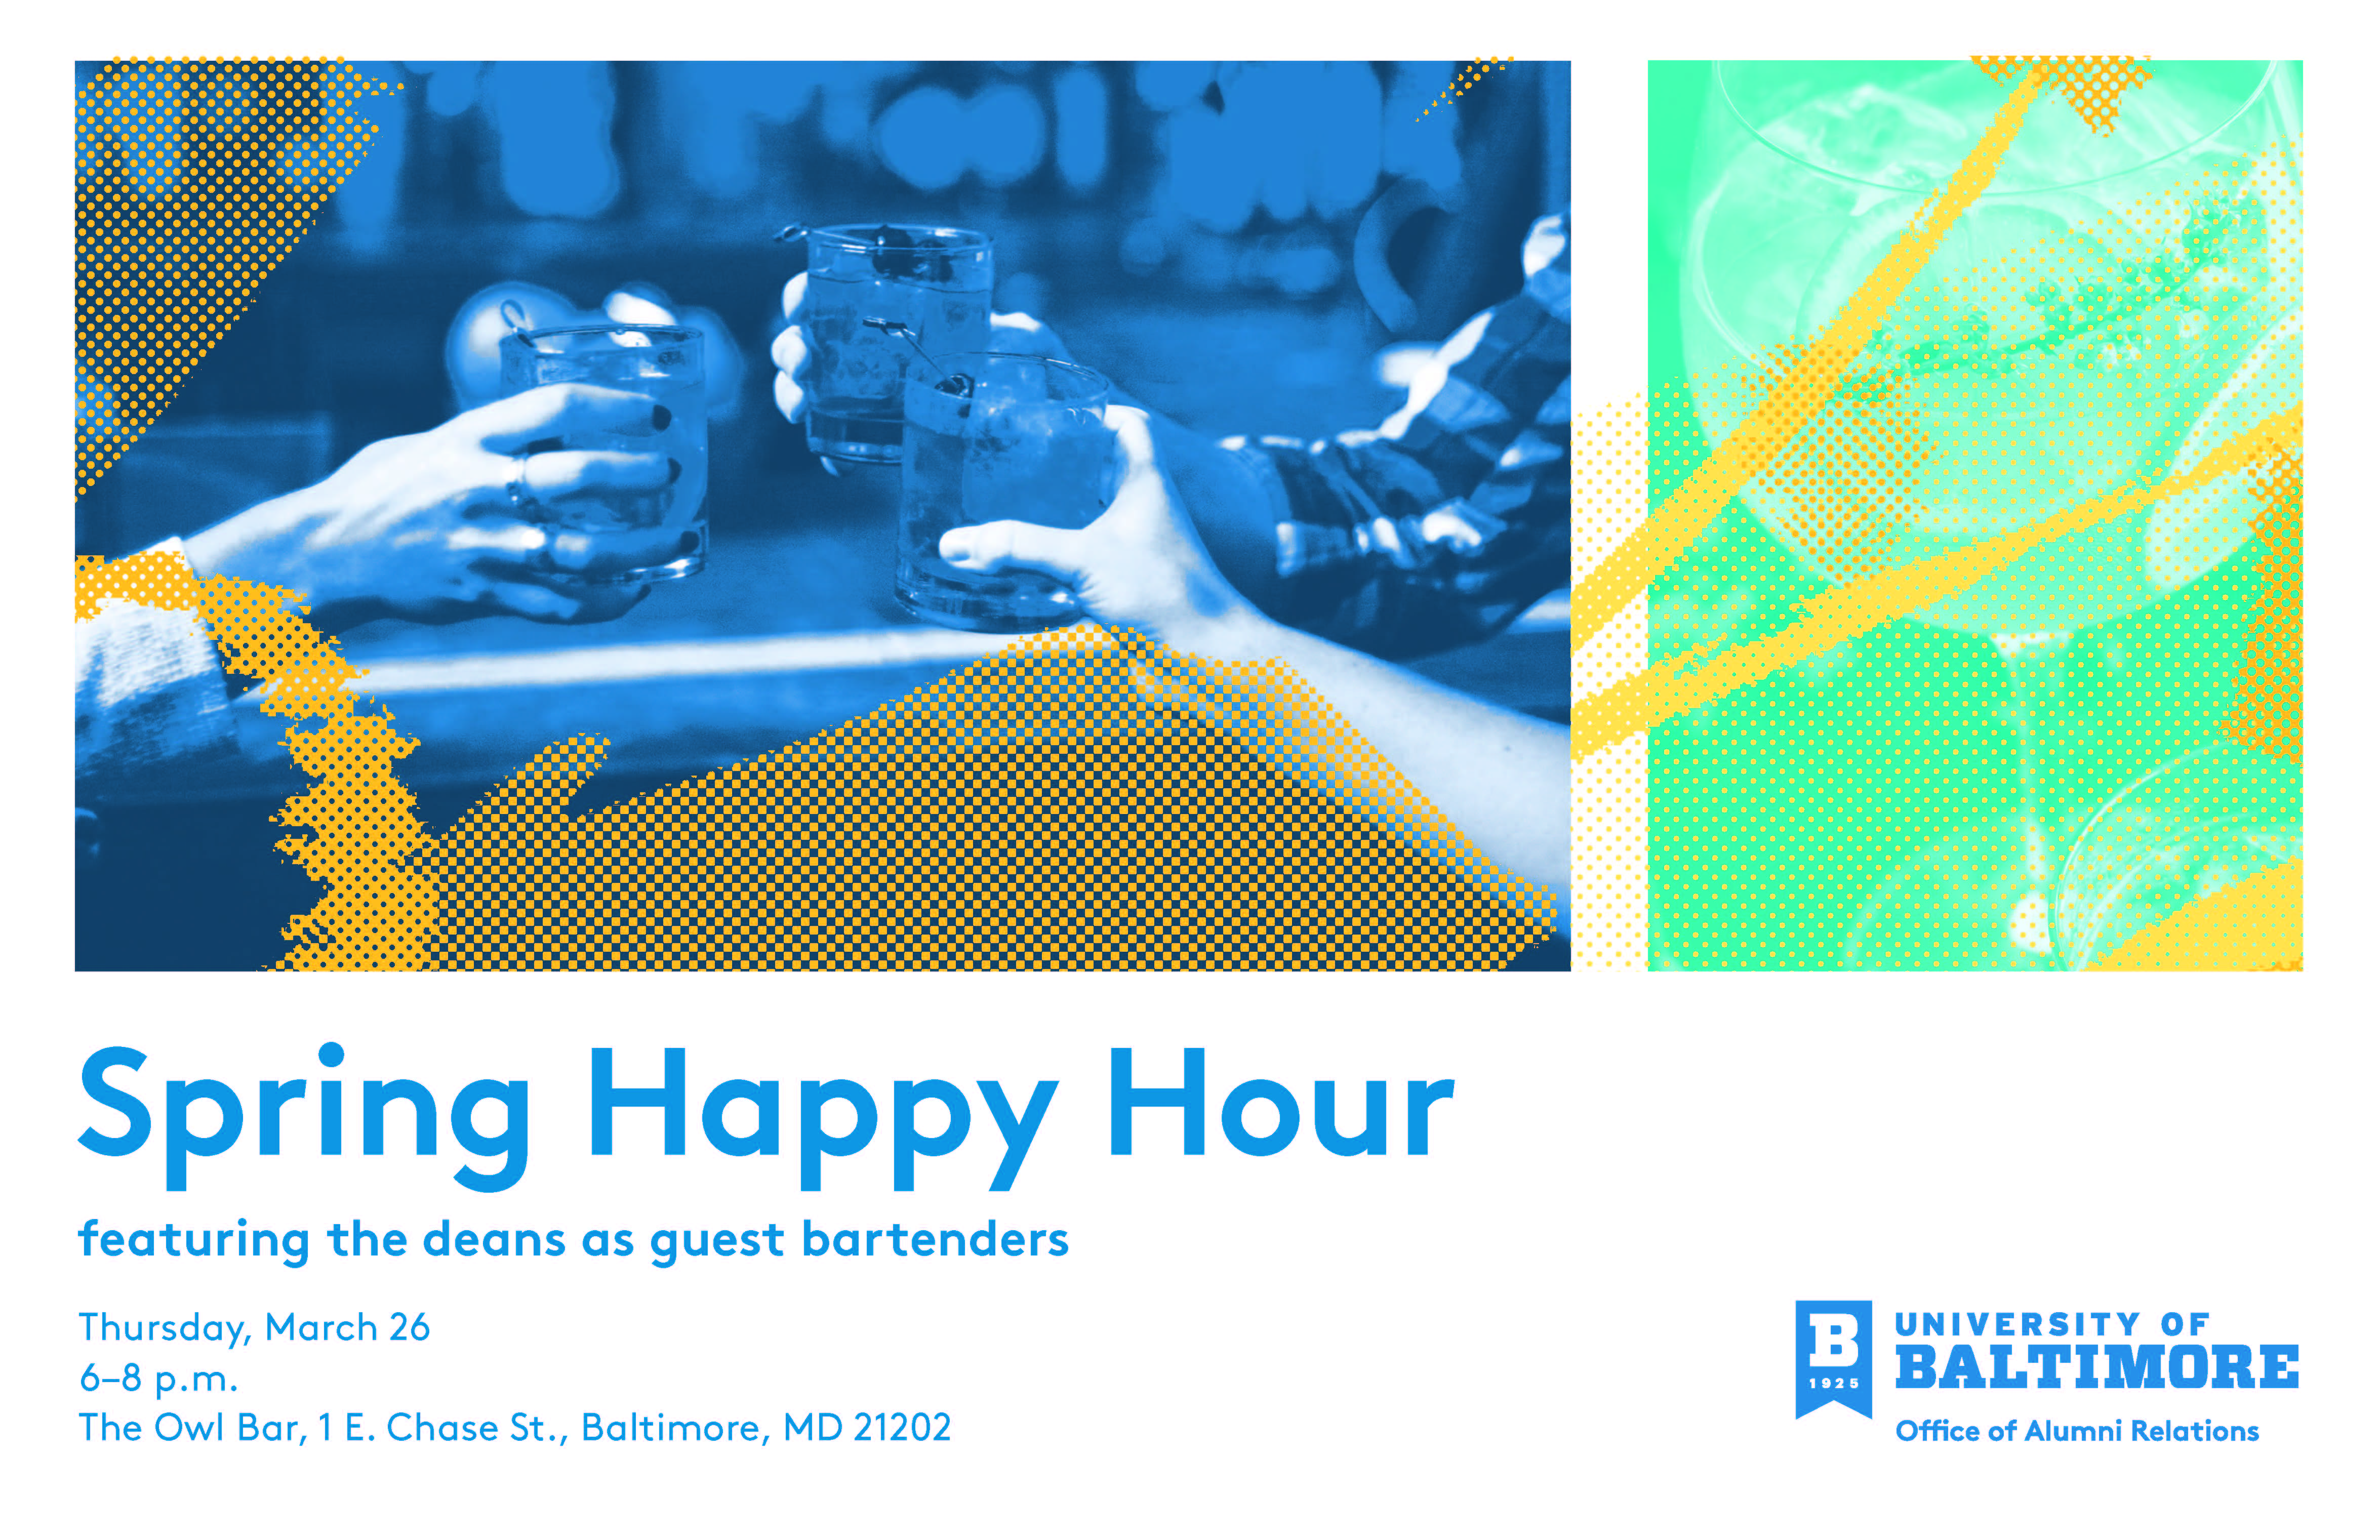 Spring Happy Hour featuring the deans as guest bartenders